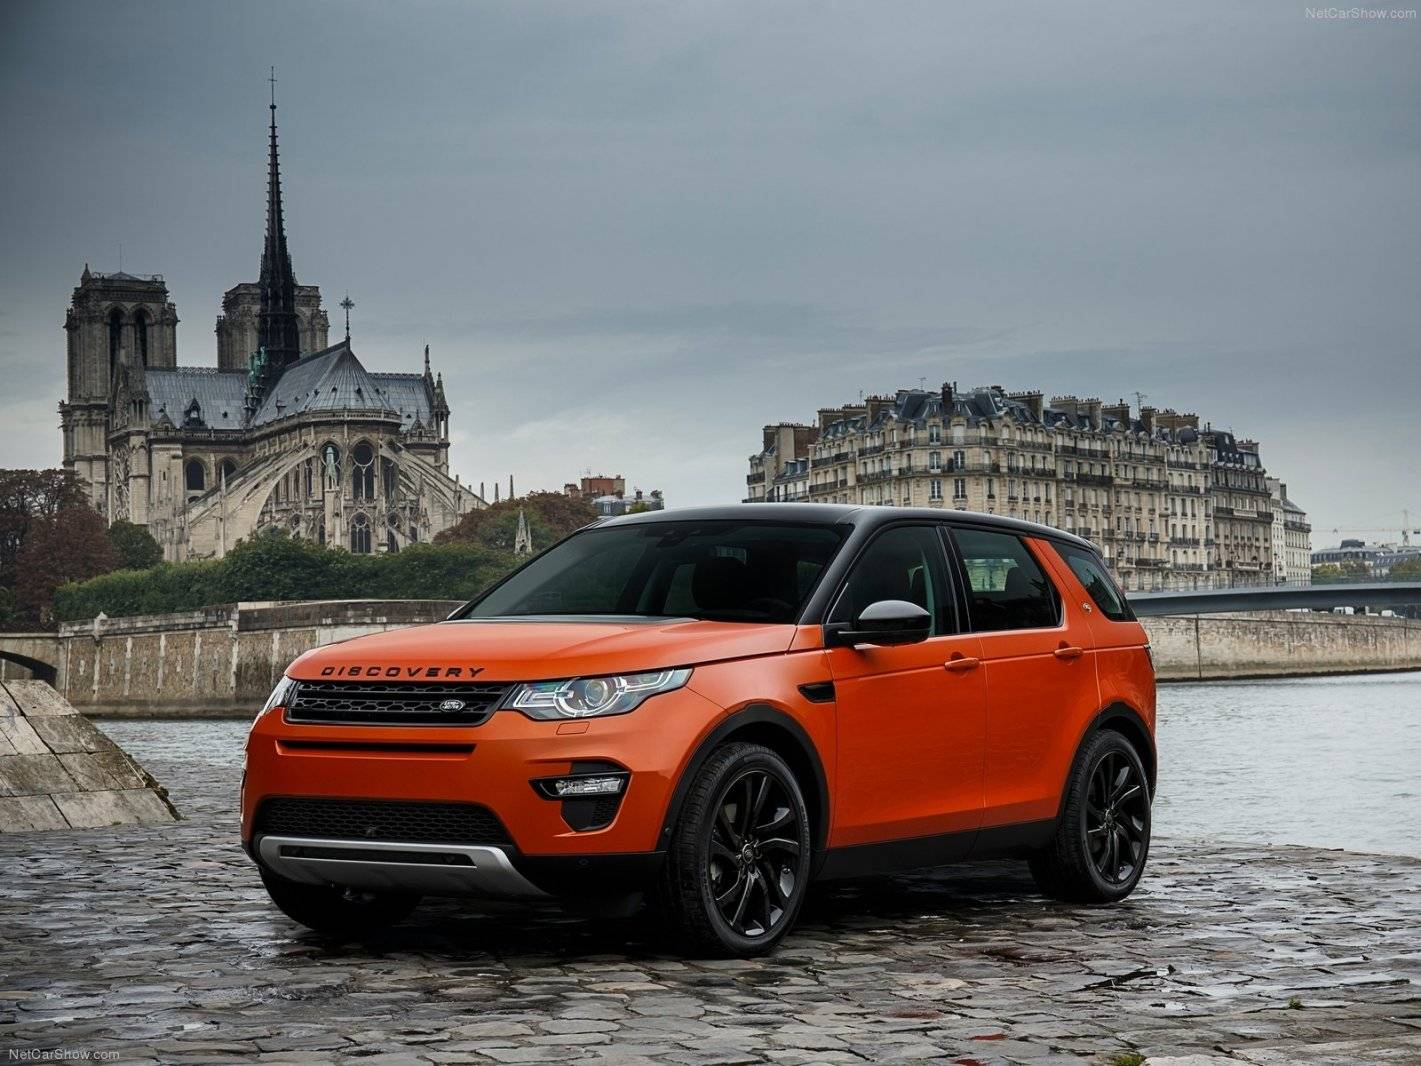 wil jij alles weten over de land rover discovery sport autonieuws. Black Bedroom Furniture Sets. Home Design Ideas